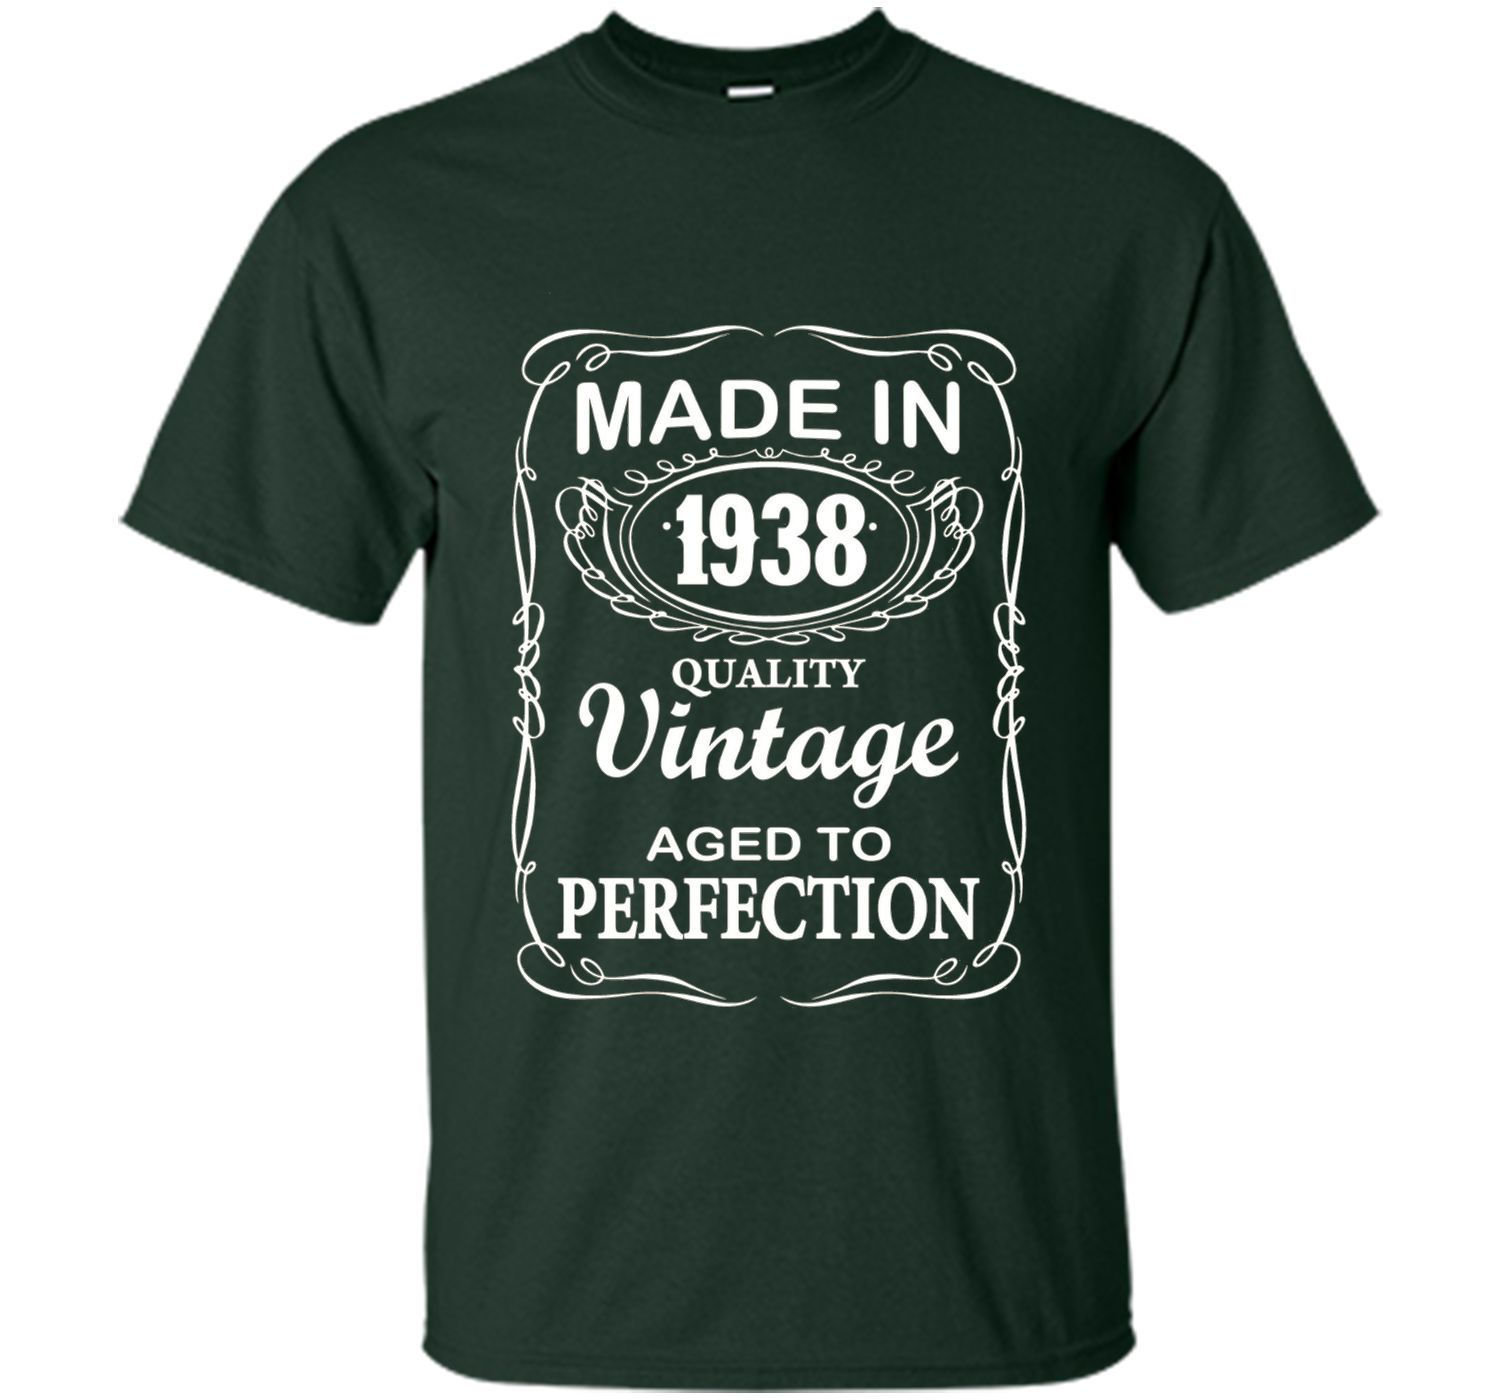 Made in 1938, Quality Vintage, Aged to perfection